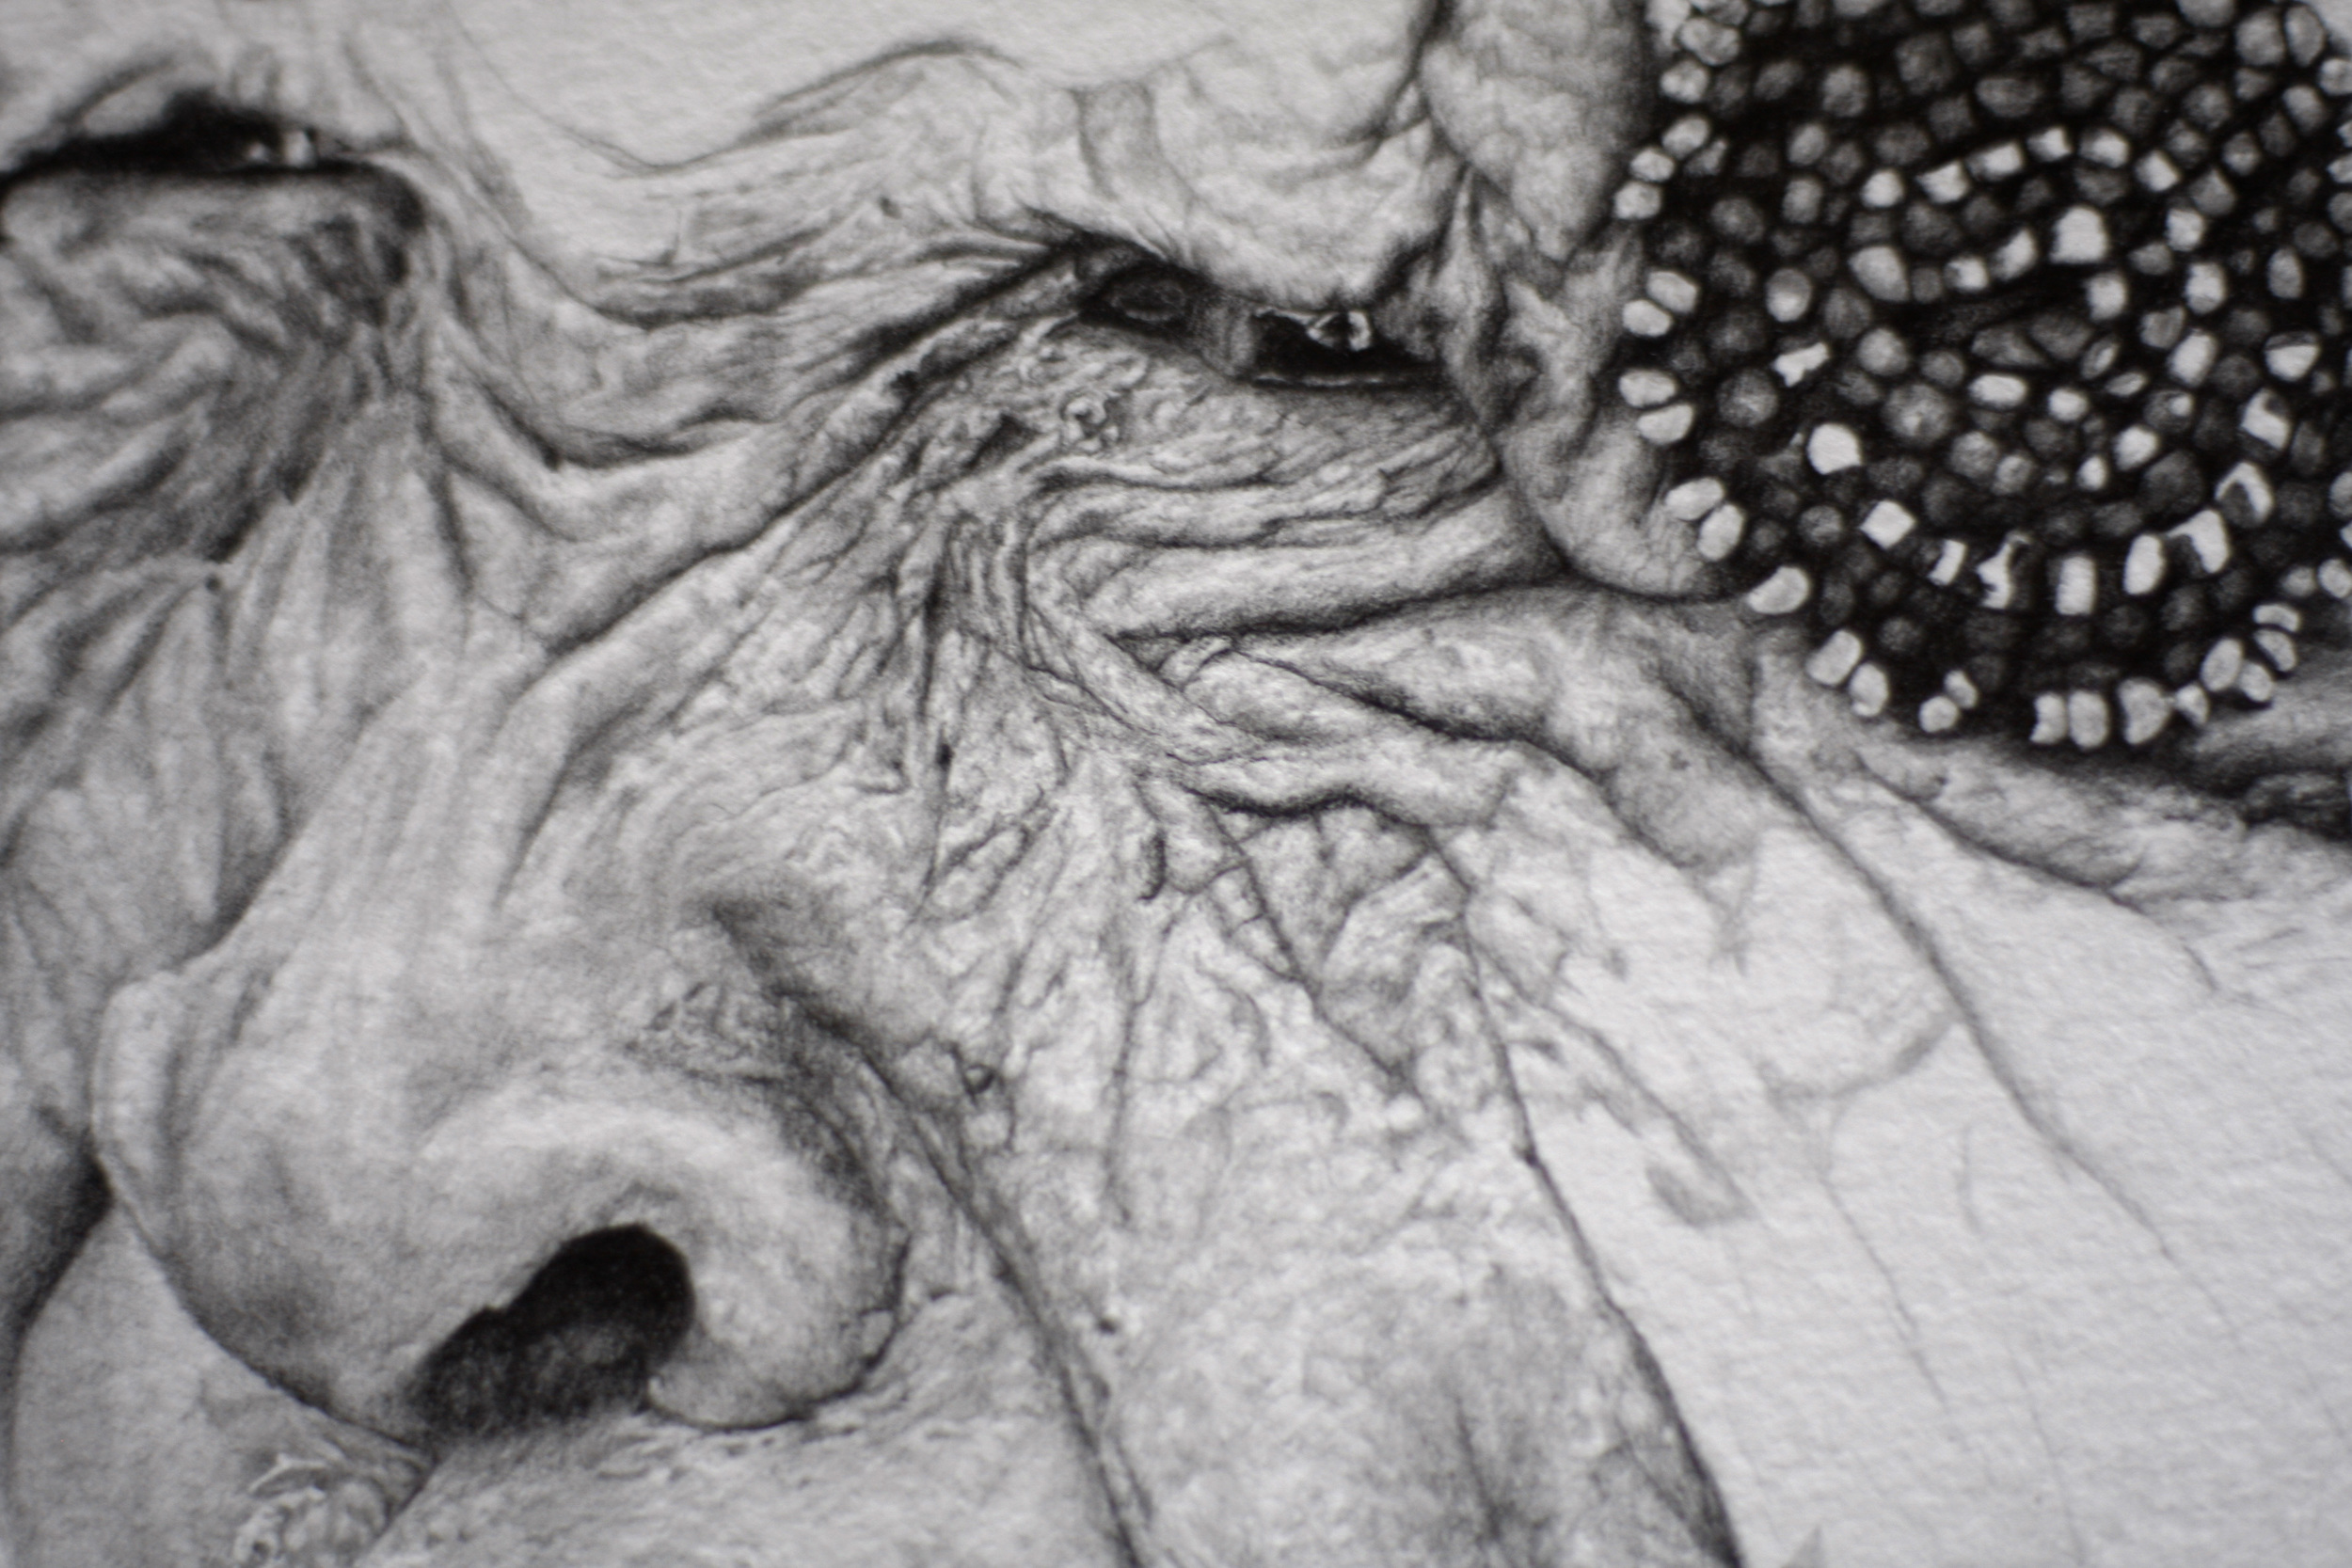 Detail image of the drawing Dignity in progress.